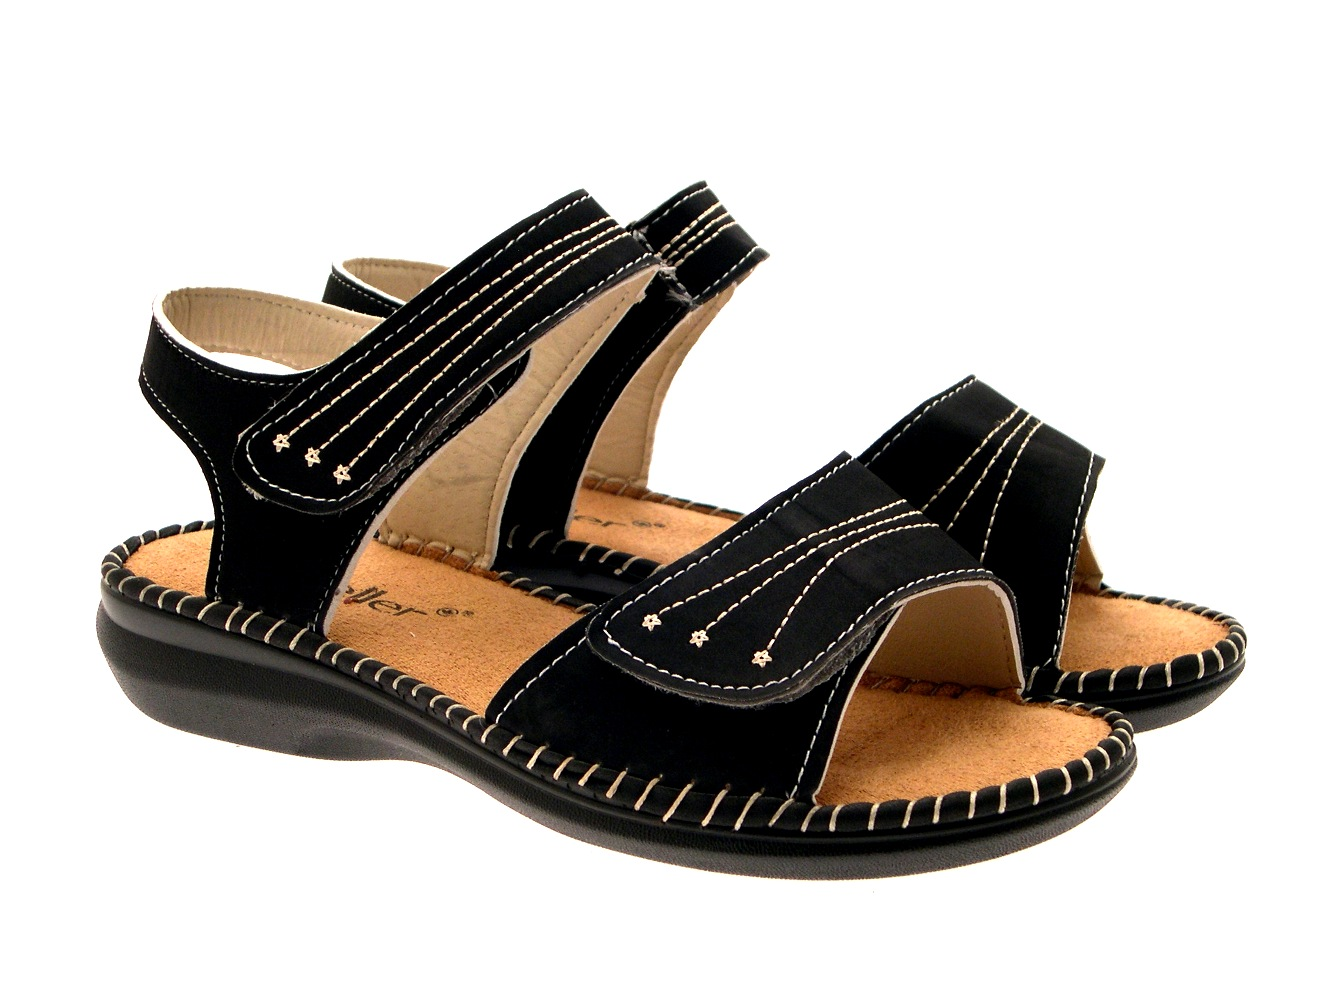 WOMENS LOW WEDGE WIDE COMFORT CUSHIONED SANDALS SUMMER ...